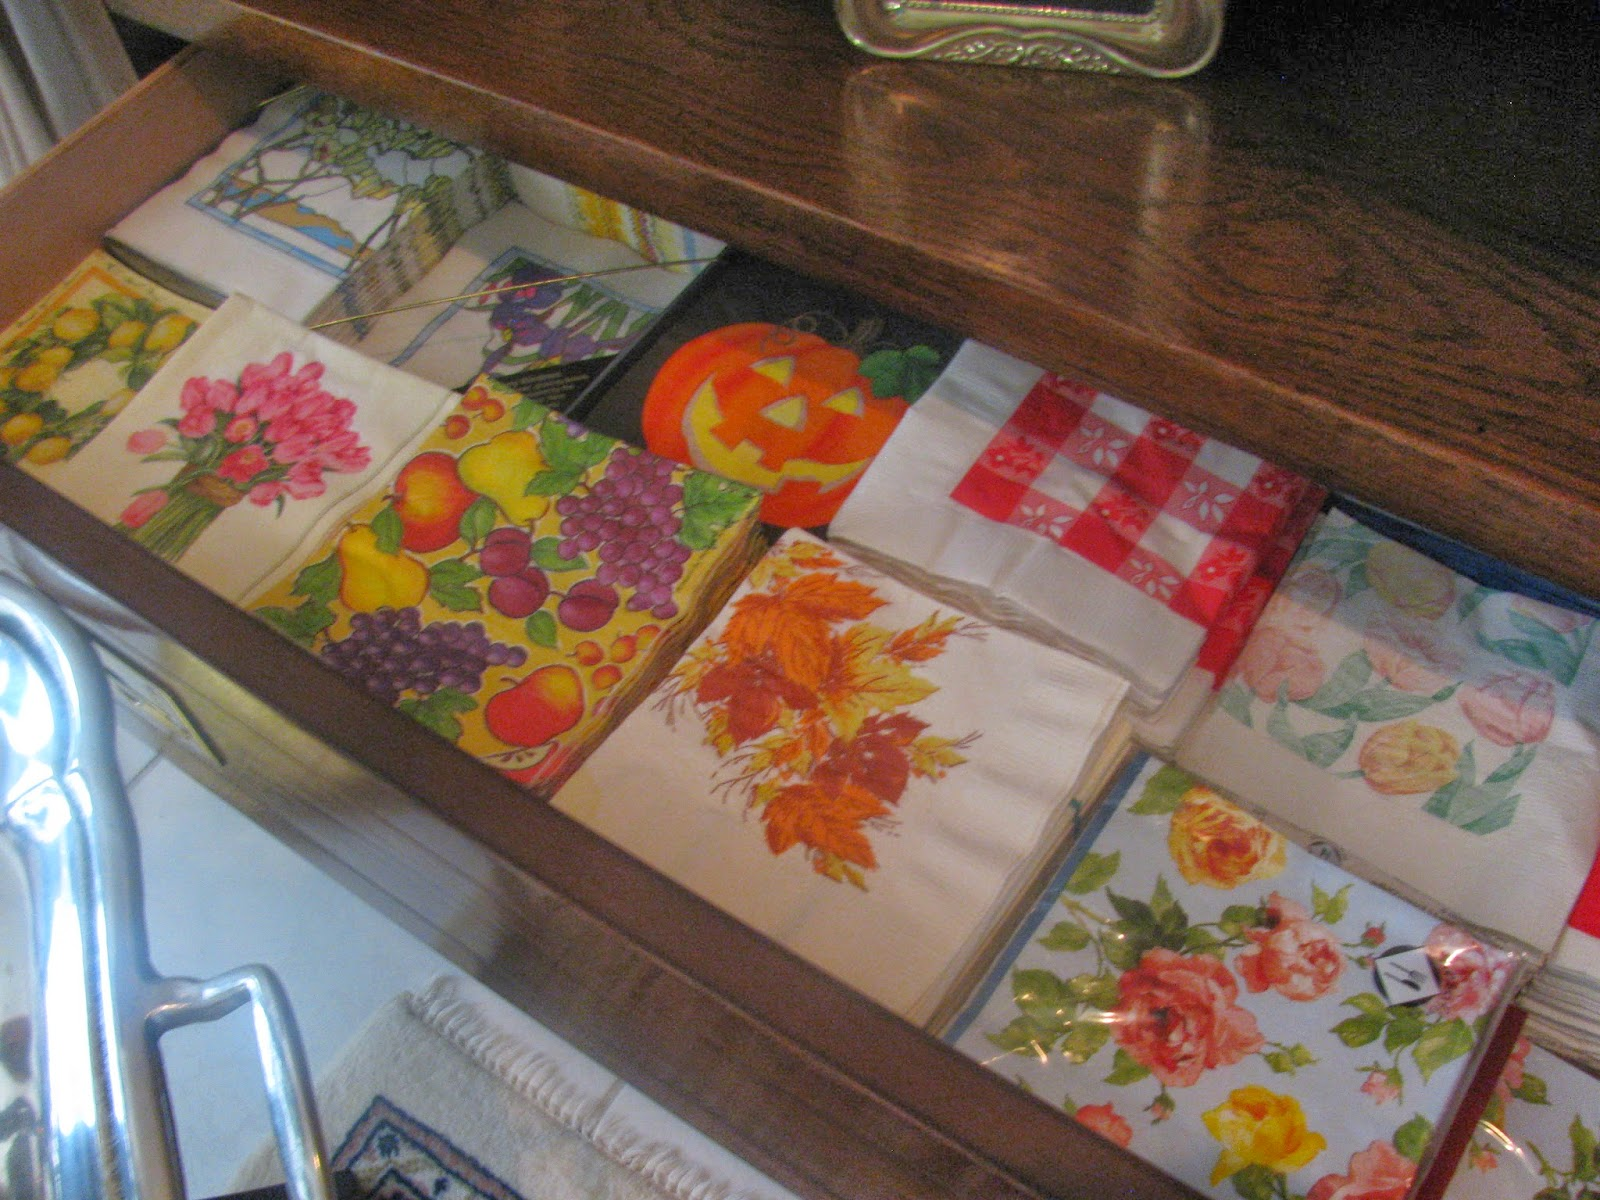 snacks you me c drawers img and organizing kids the index drawer s